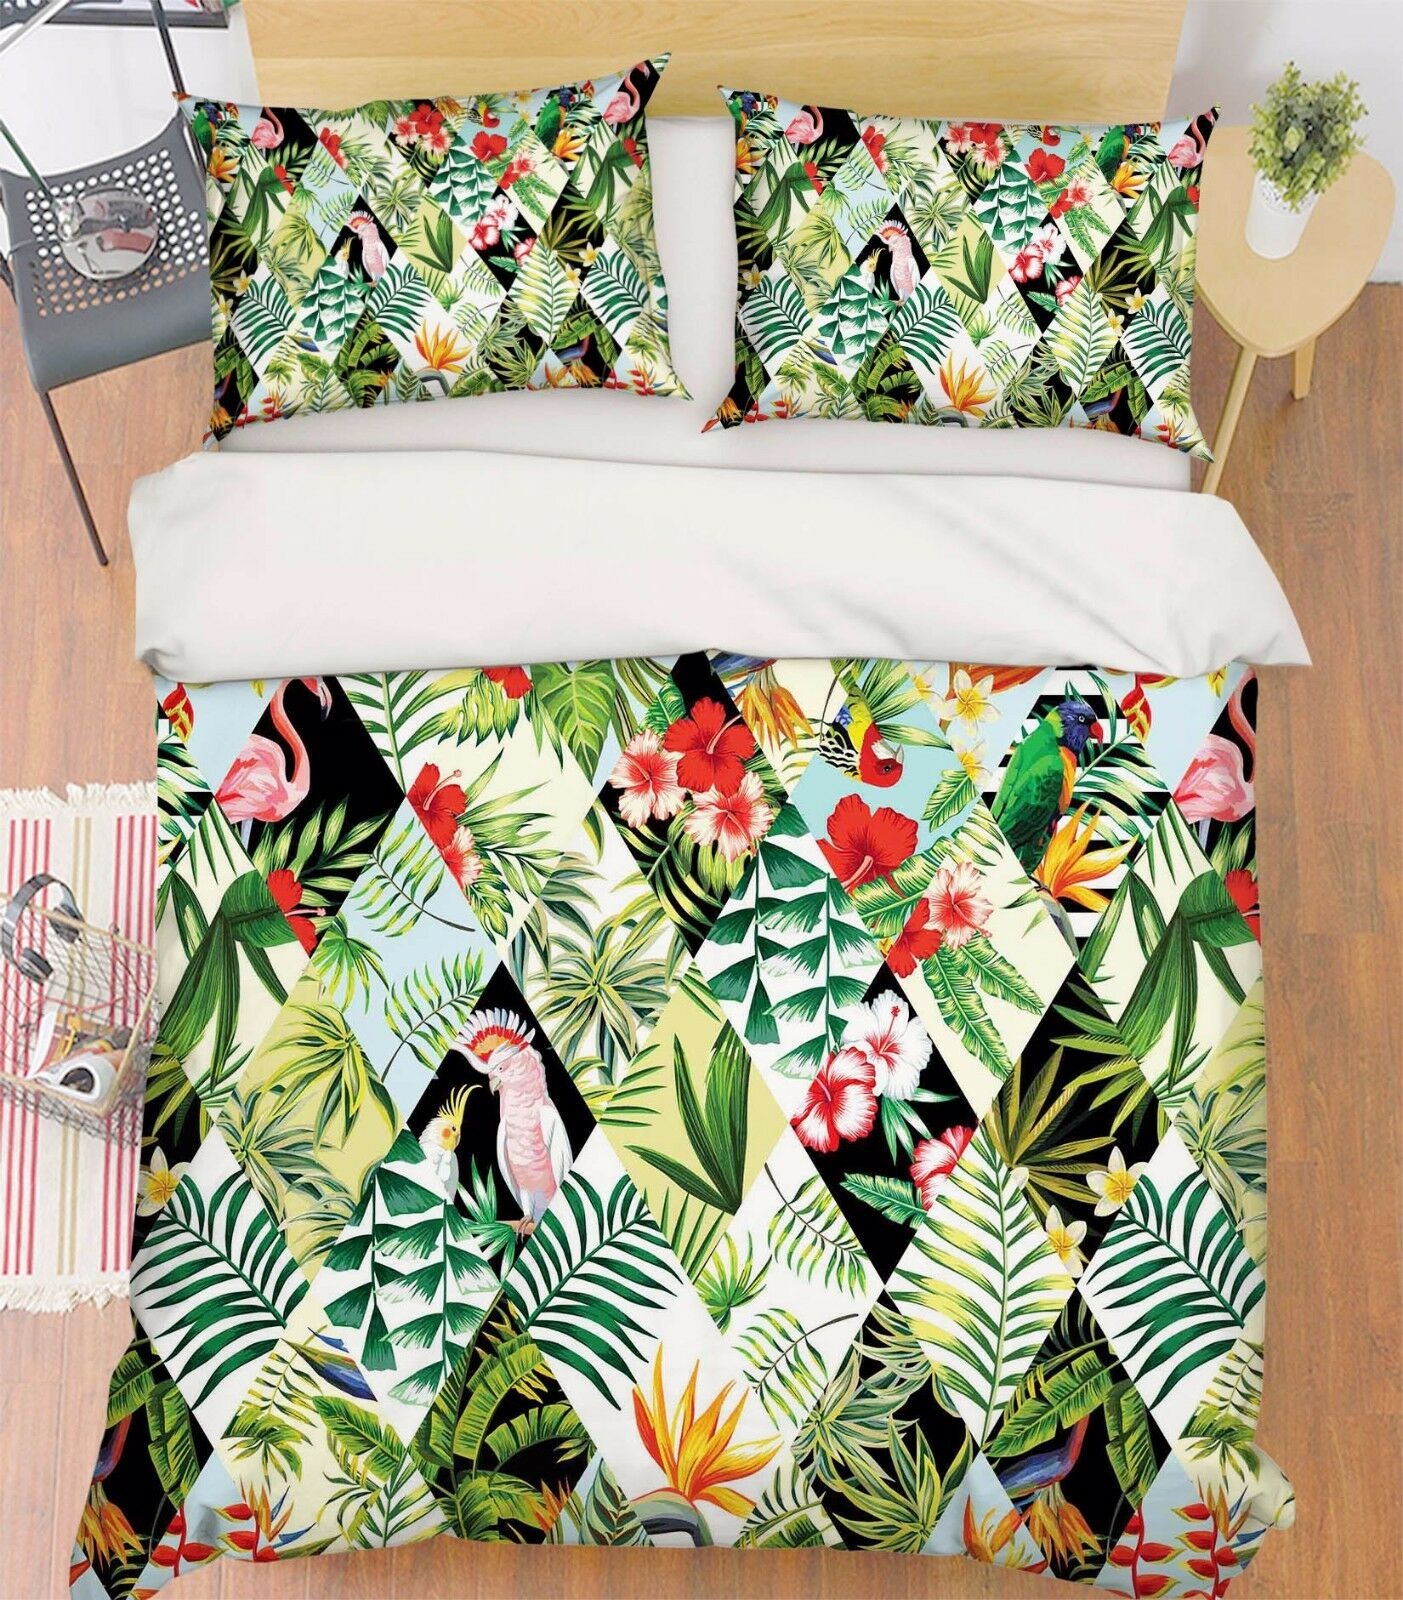 3D Leaves Paint 768 Bed Pillowcases Quilt Duvet Cover Set Single Queen UK Carly